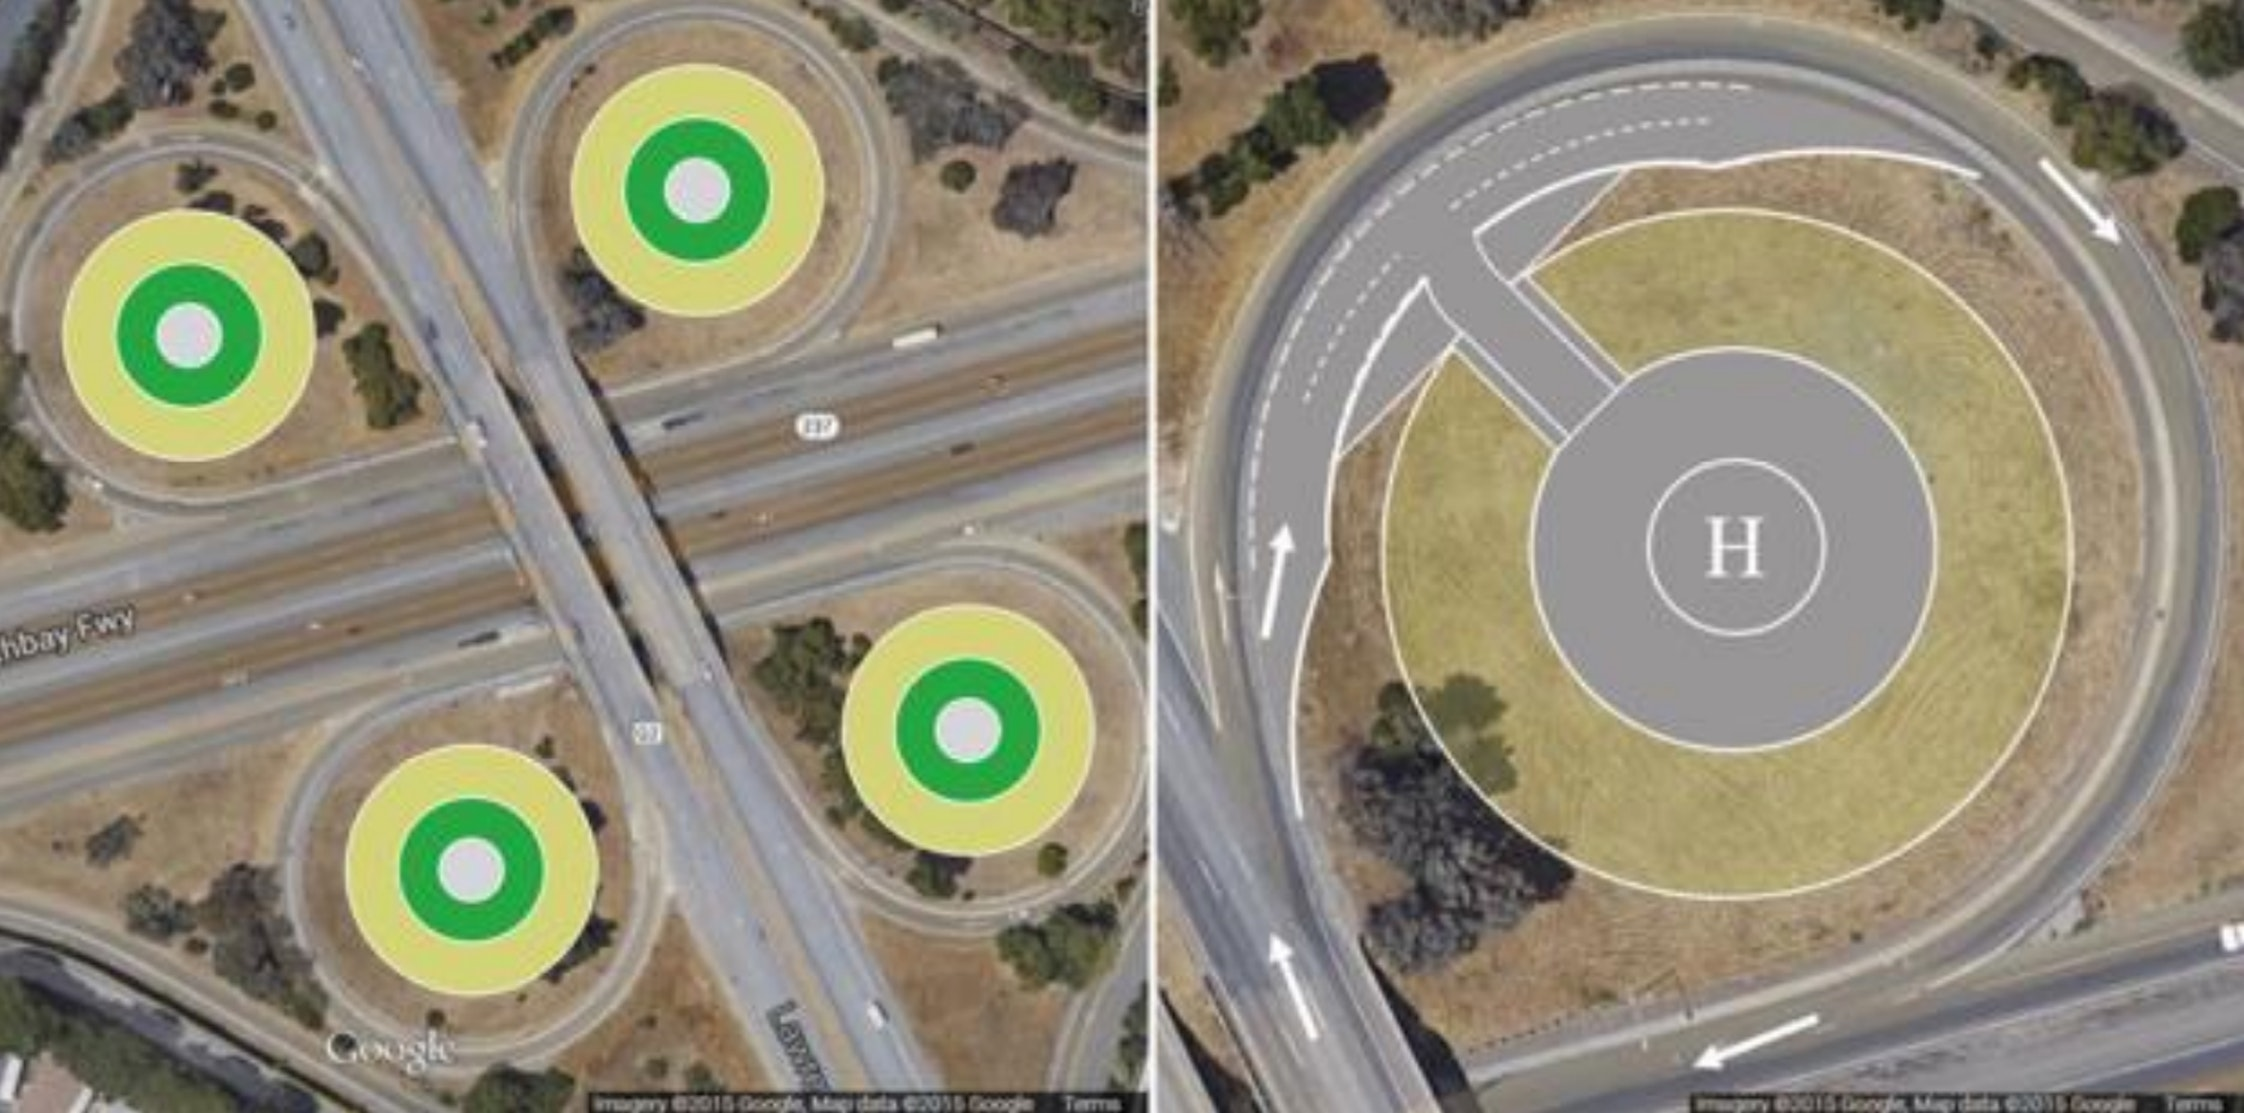 NASA research on how existing highway structures could be repurposed to include vertistops in convenient locations.